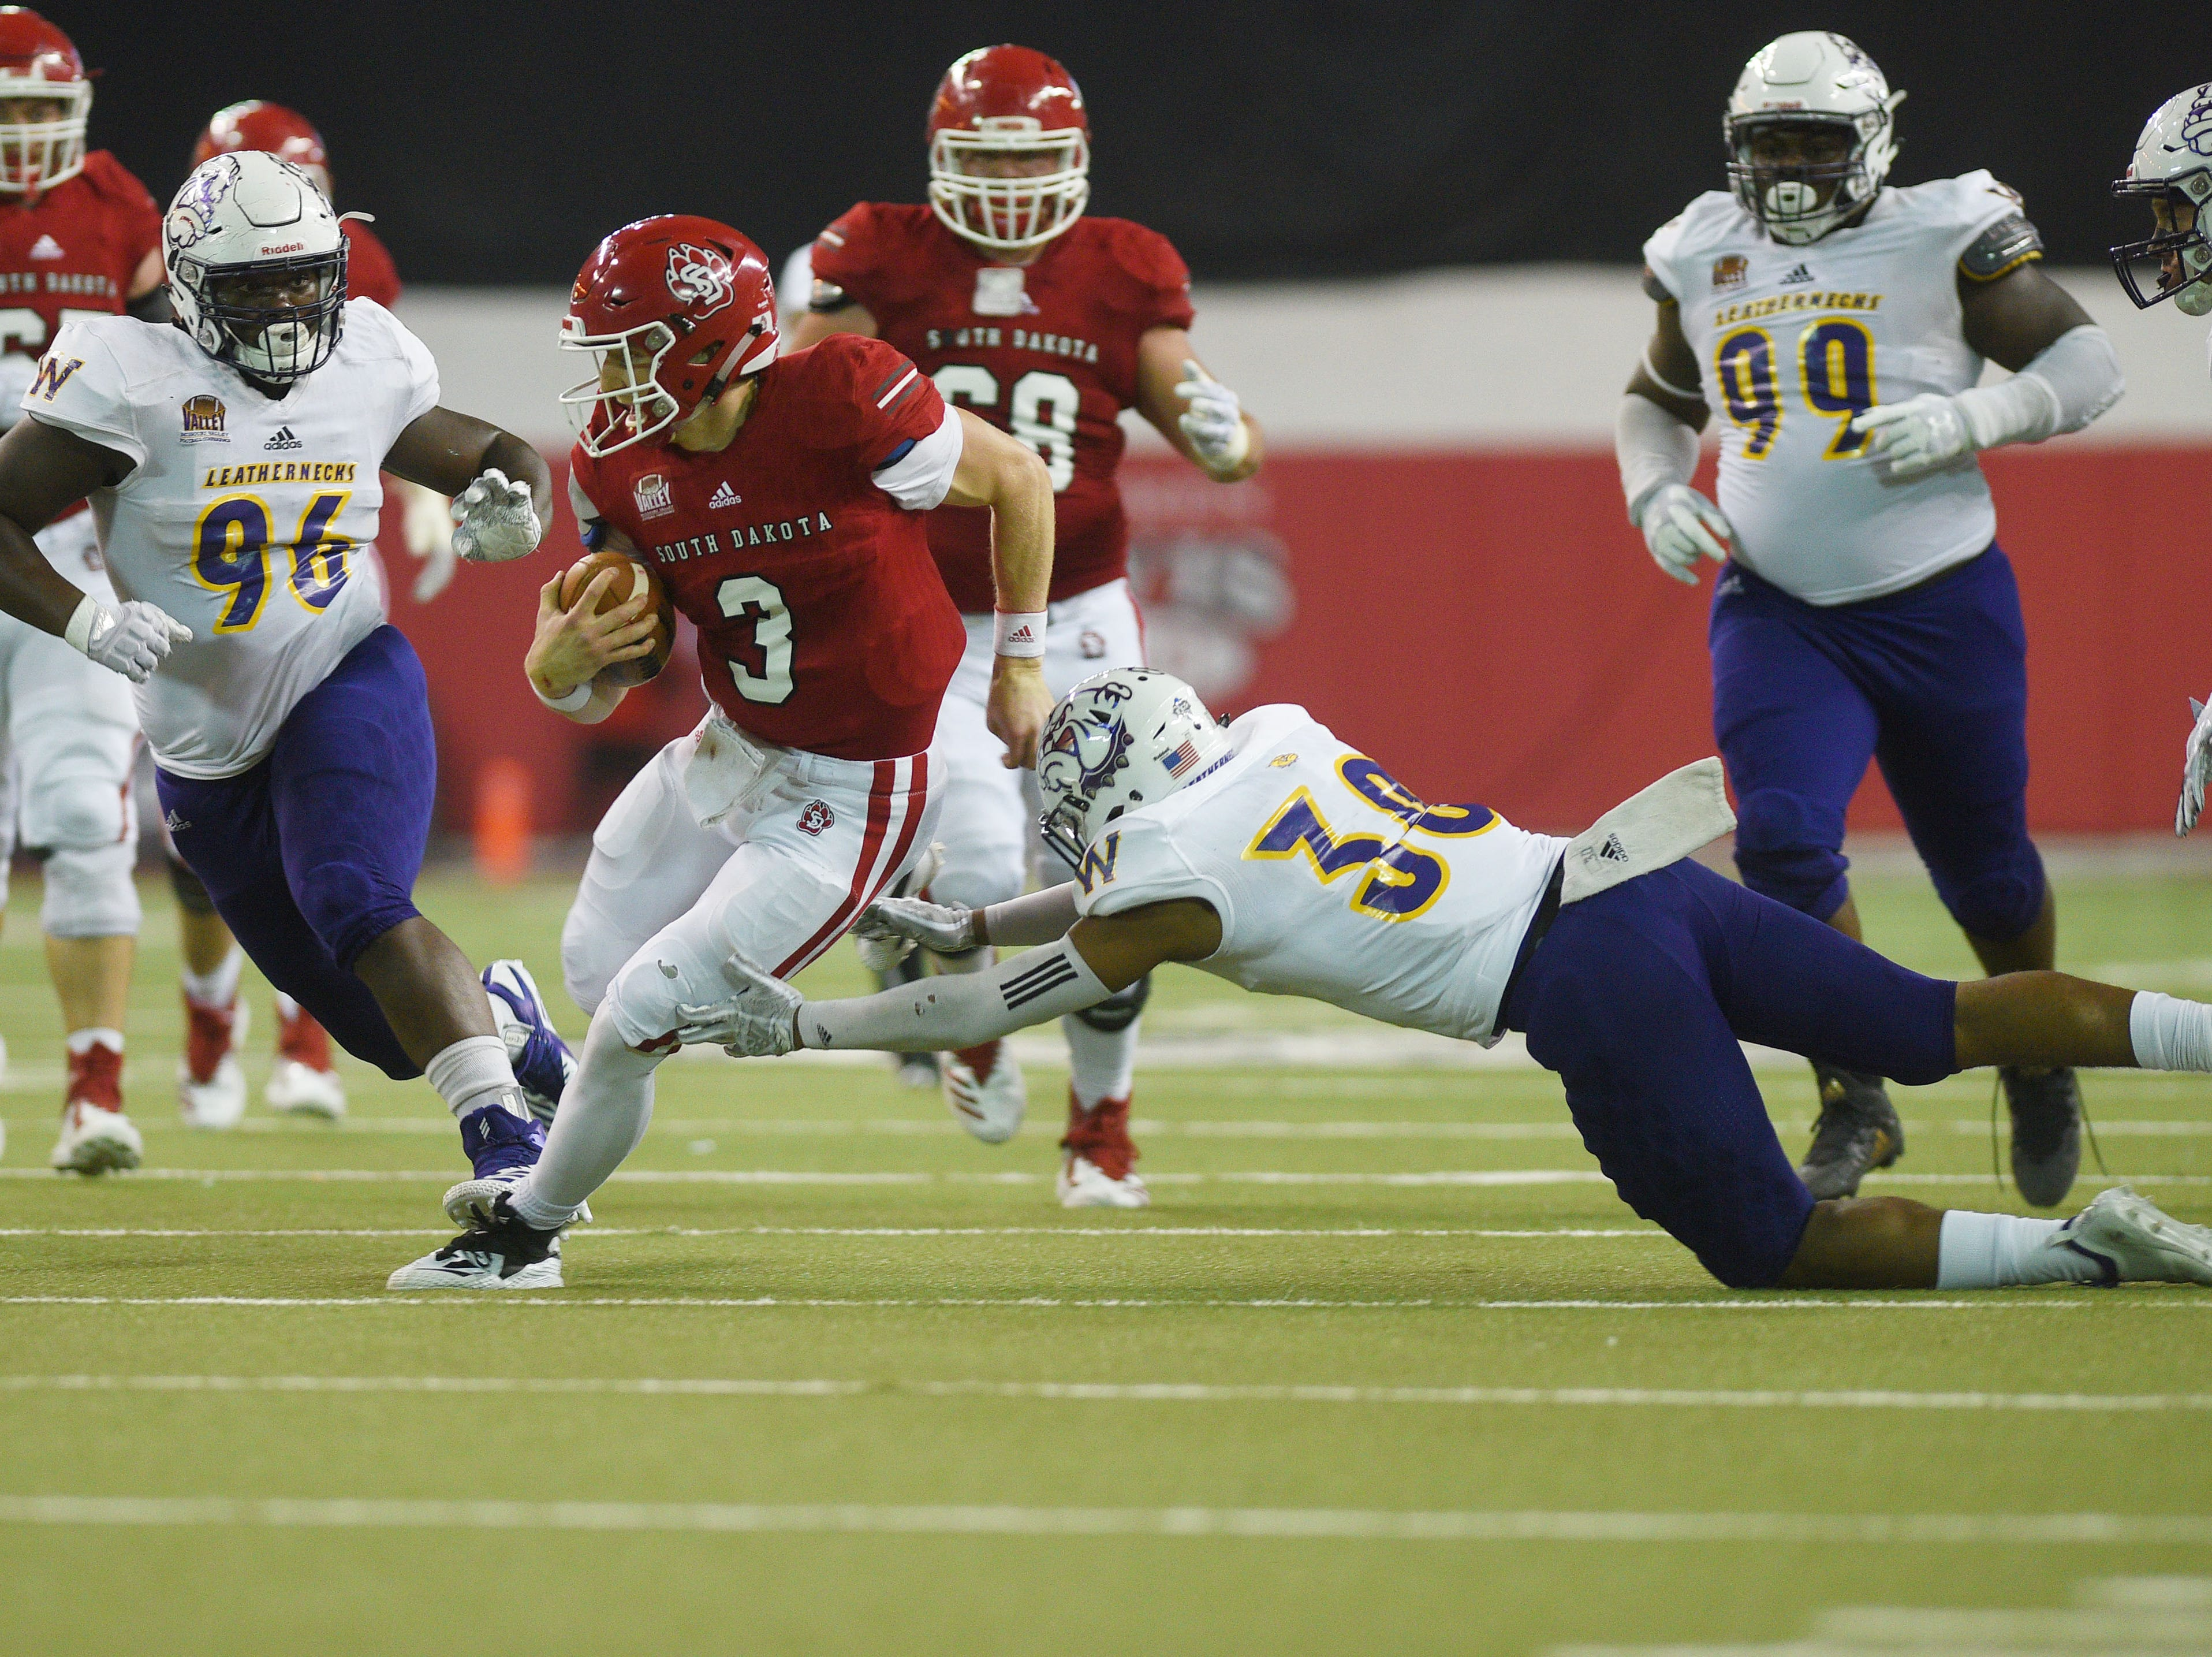 Western Illinois' Justin Fitzpatrick attempts to tackle USD's Austin Simmons during the game Saturday, Nov. 10, at the DakotaDome in Vermillion.